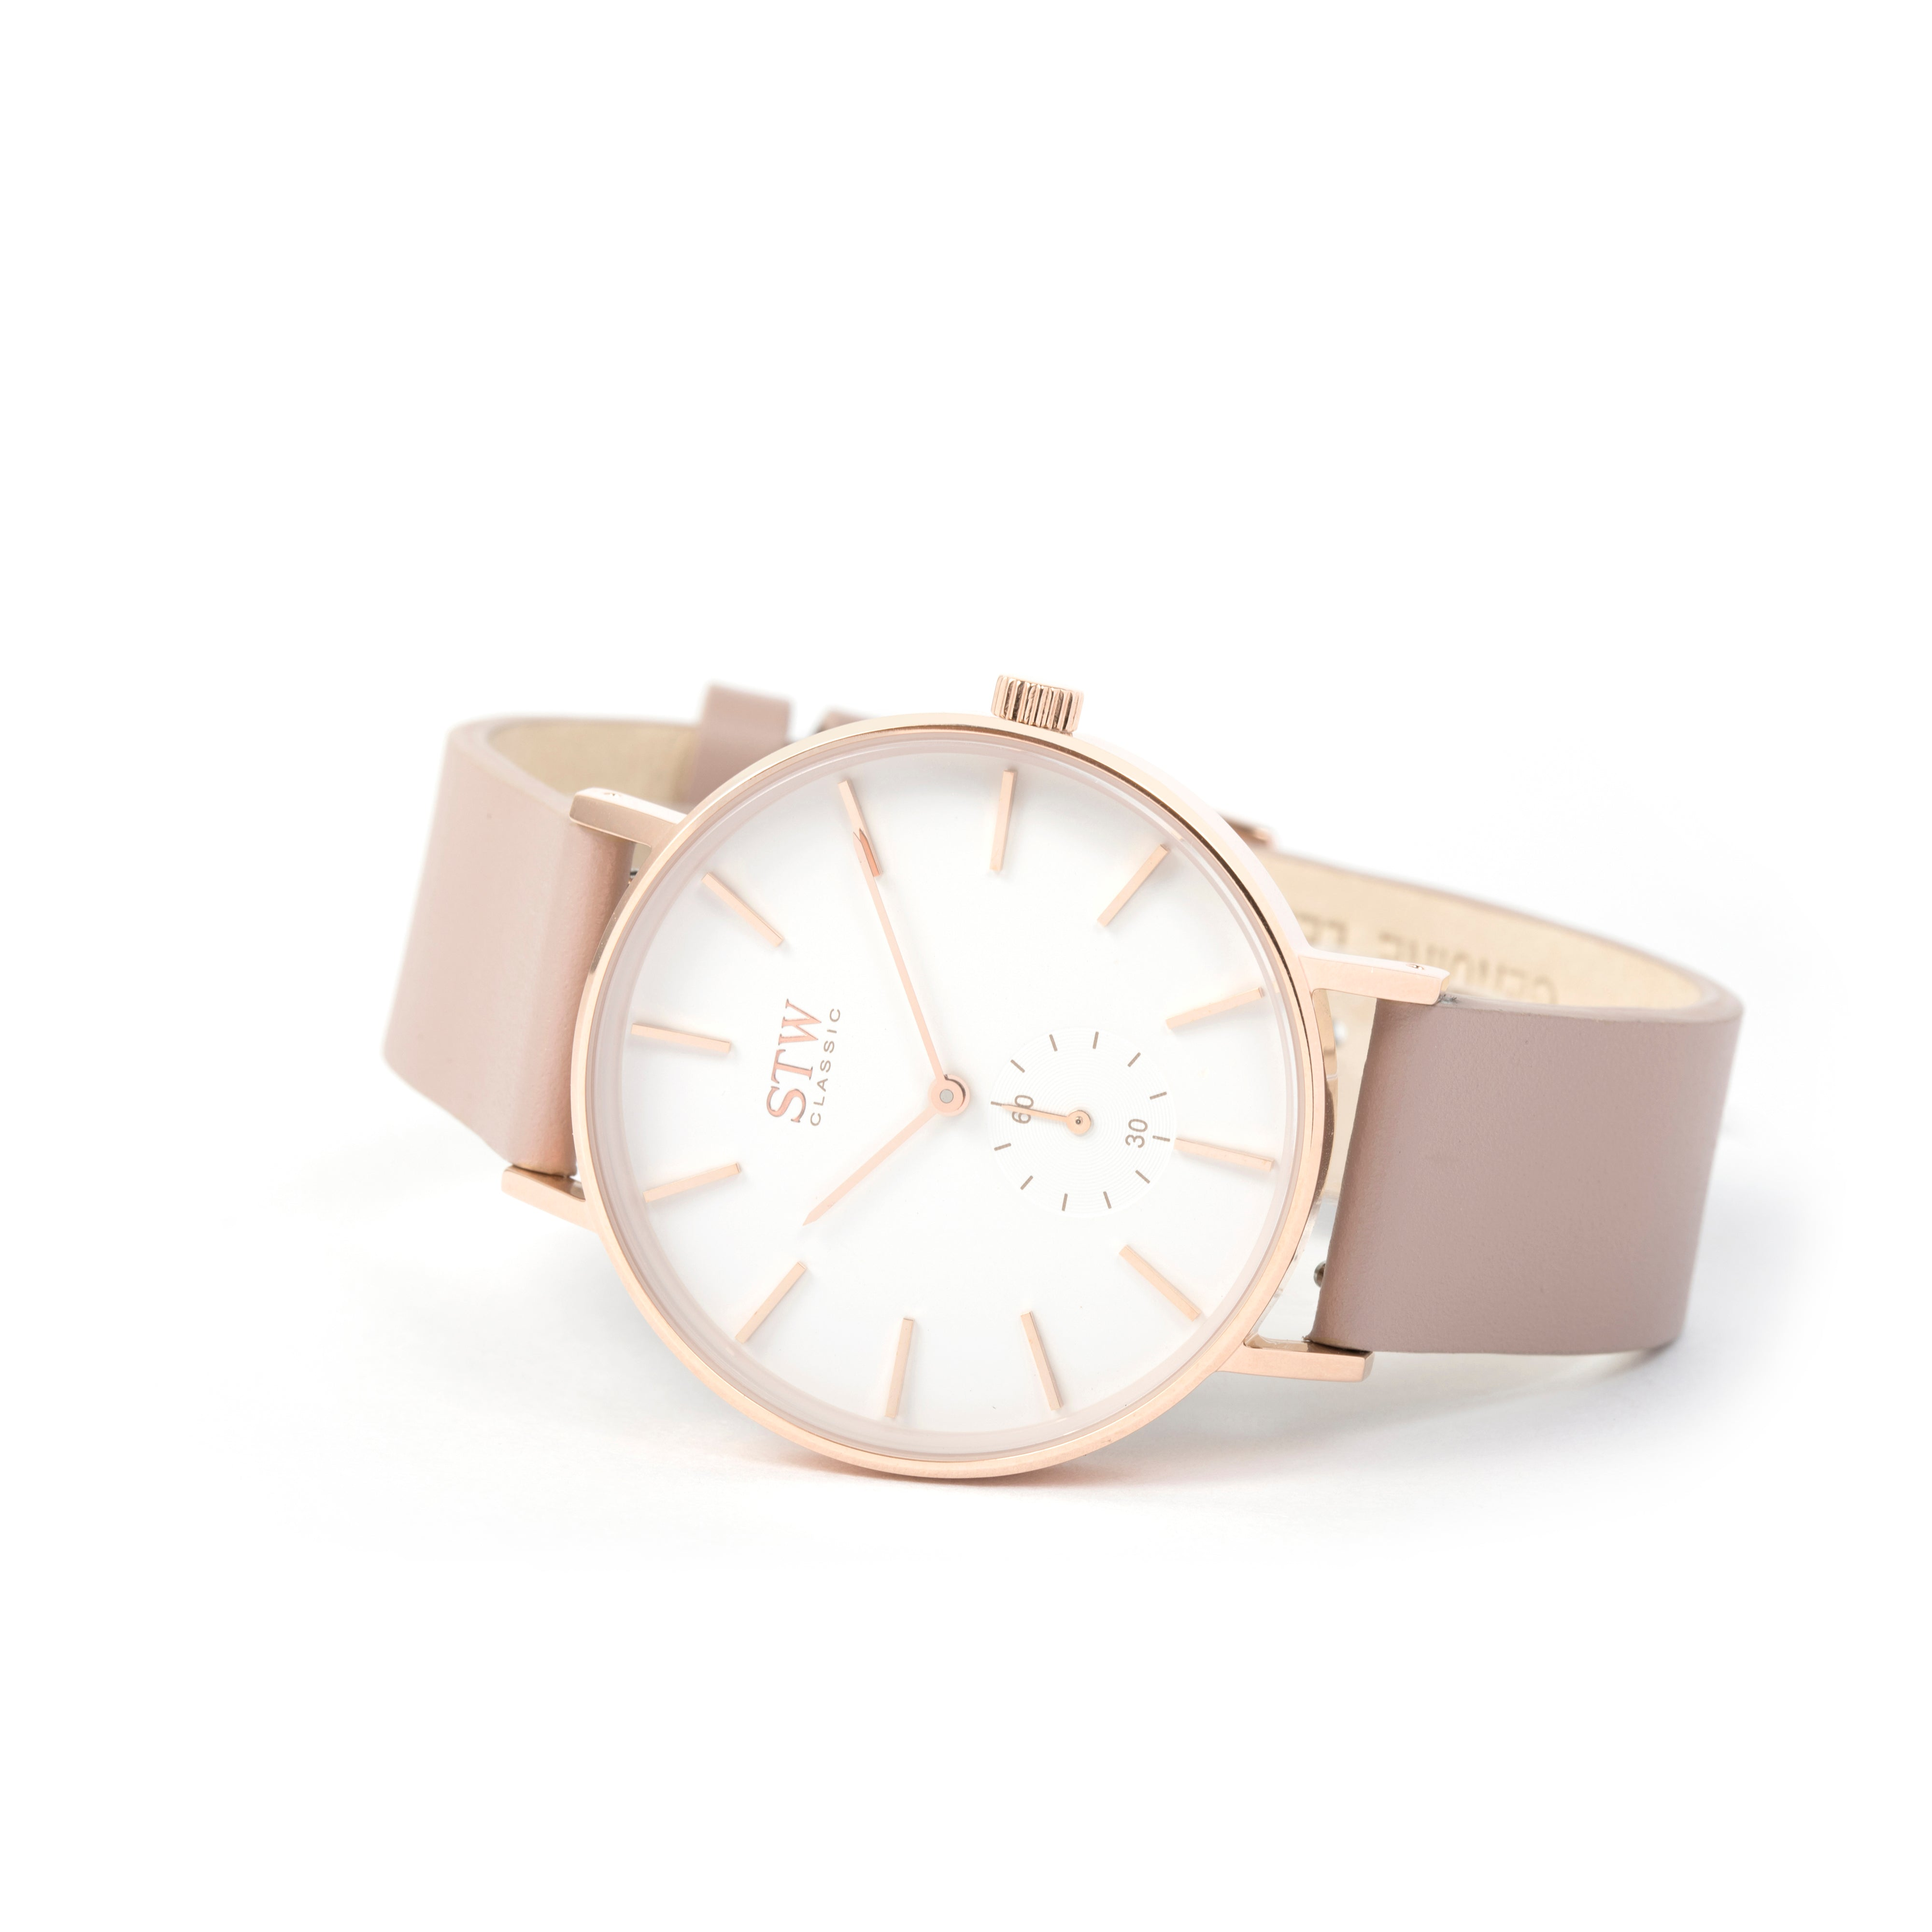 THE CLASSIC -  WHITE DIAL WITH PINK LEATHER STRAP WATCH